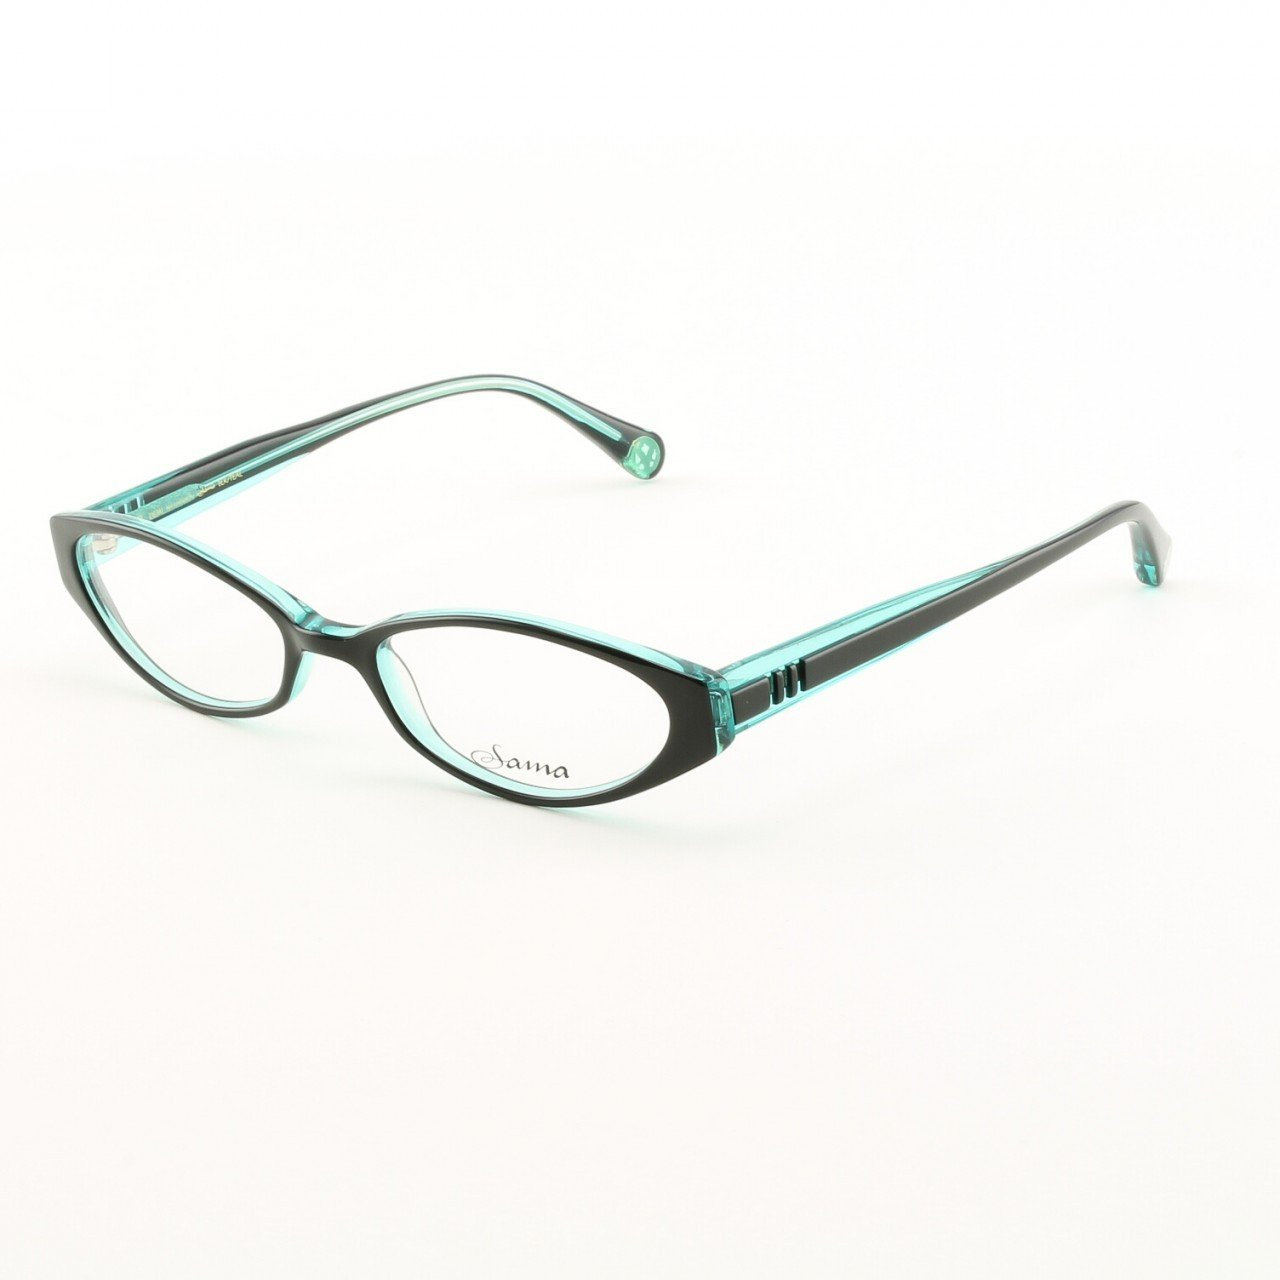 Loree Rodkin Demi Eyeglasses by Sama Col. Black and Teal with Clear Lenses